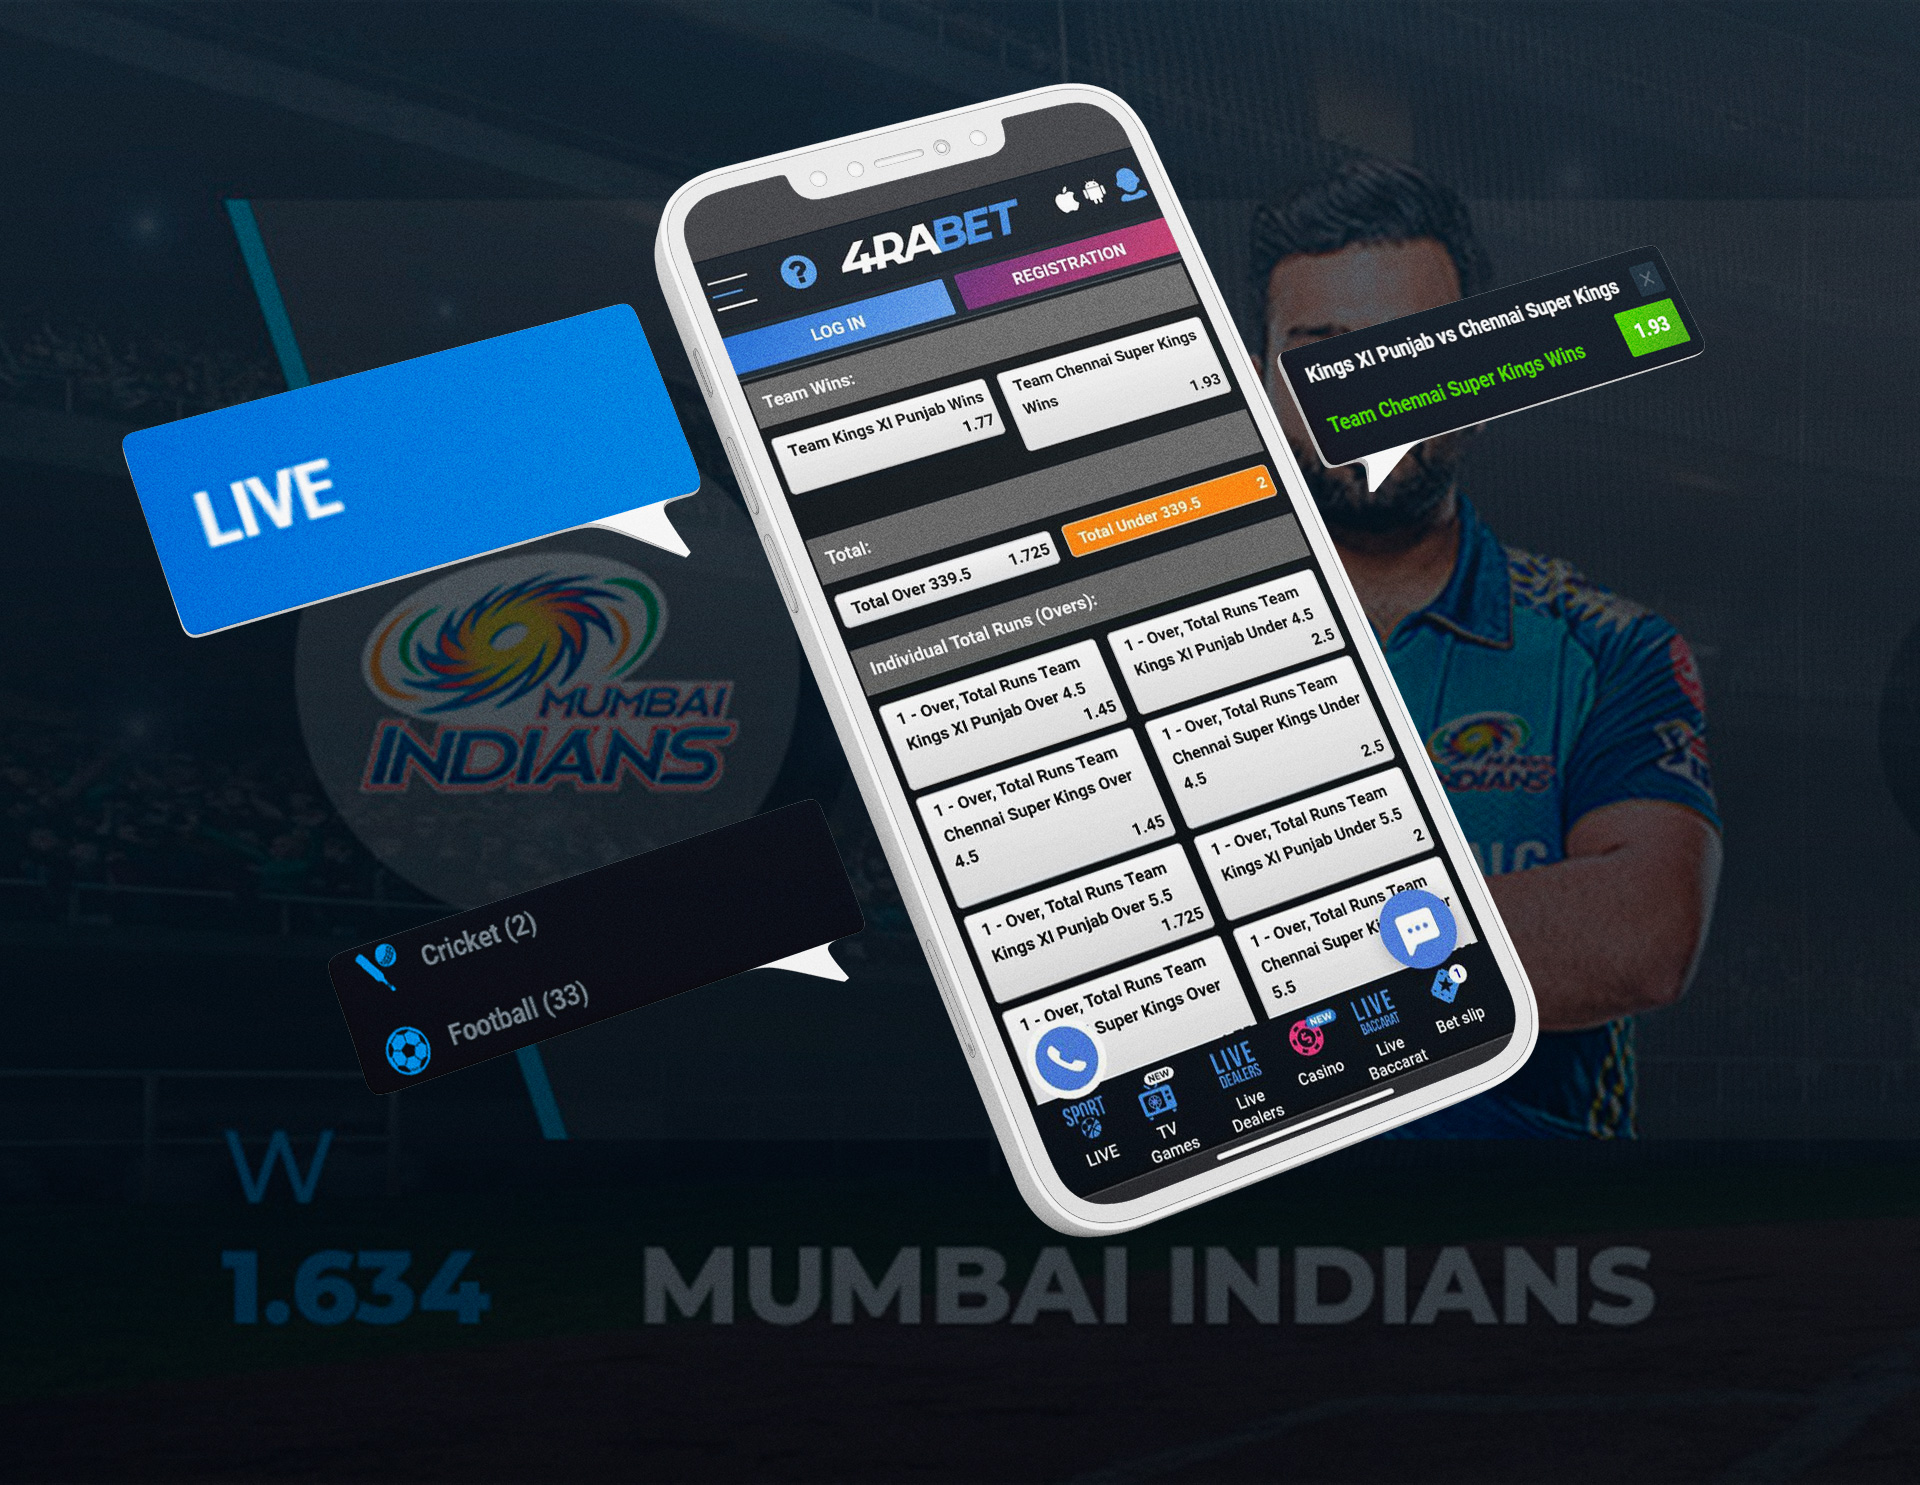 You should register at 4rabet and top up your account to place bets on cricket via your mobile phone.